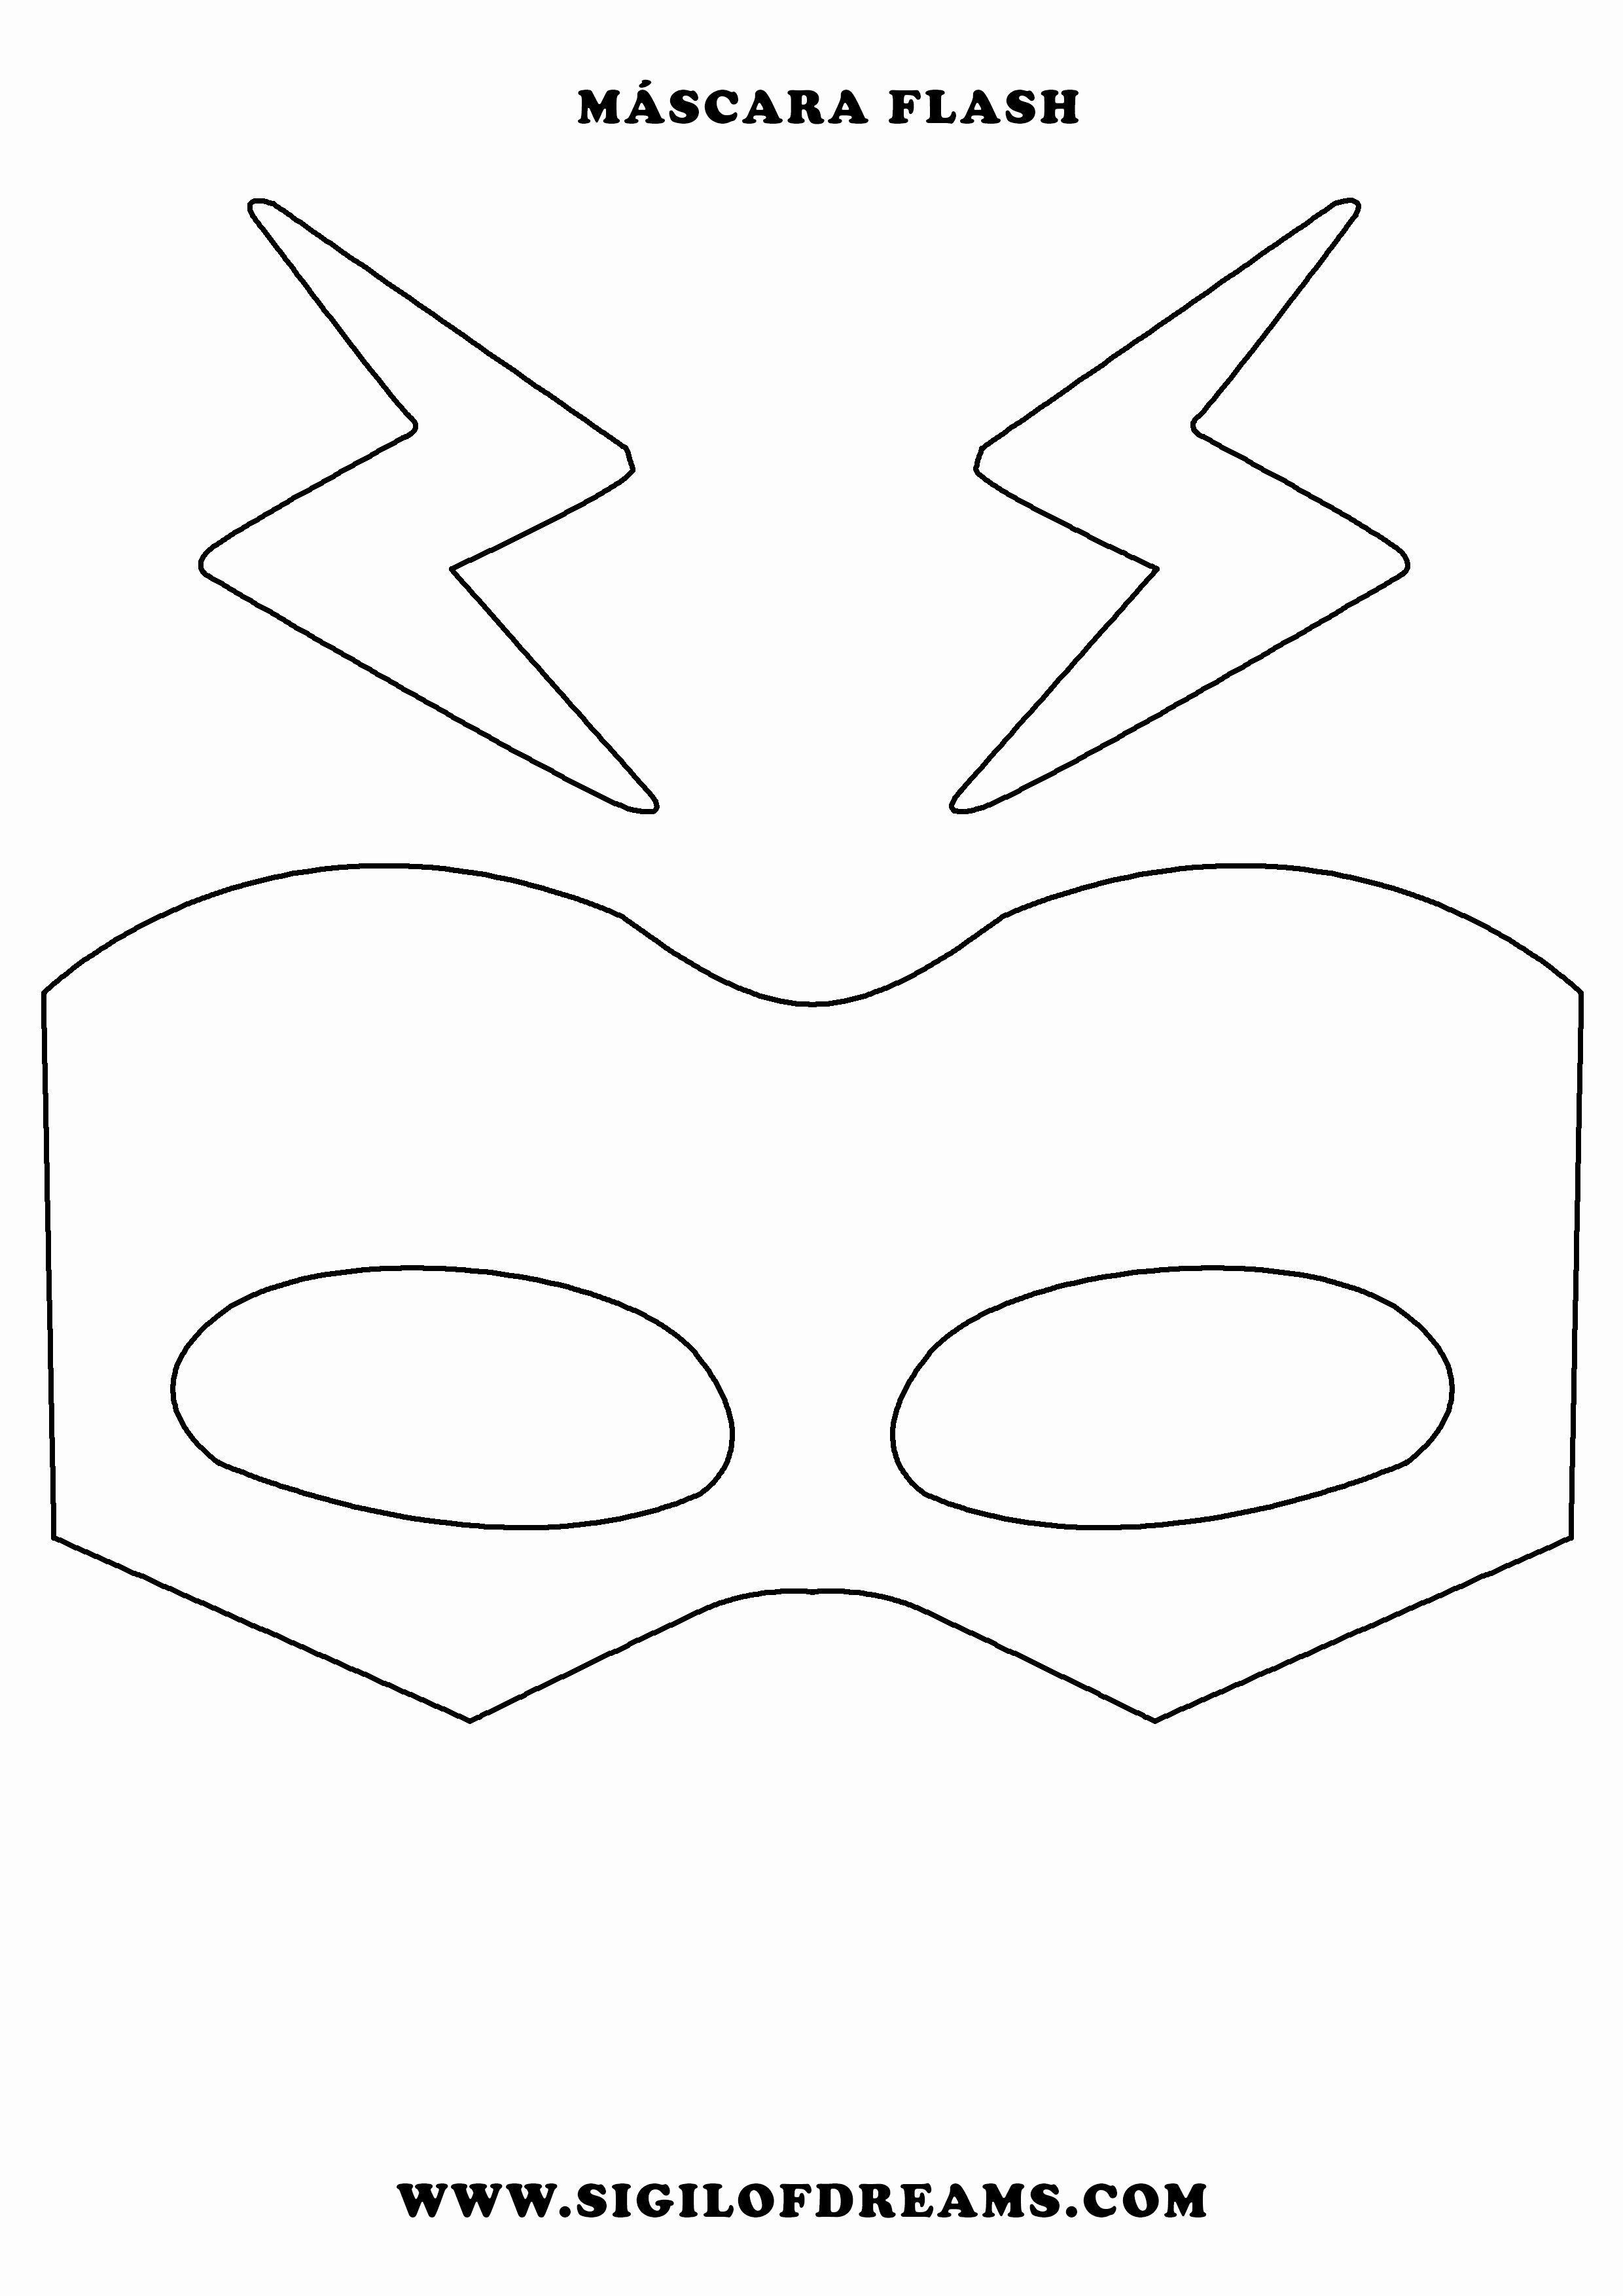 Image Result For Flash Mask Template Kids The Flash Mask Hero